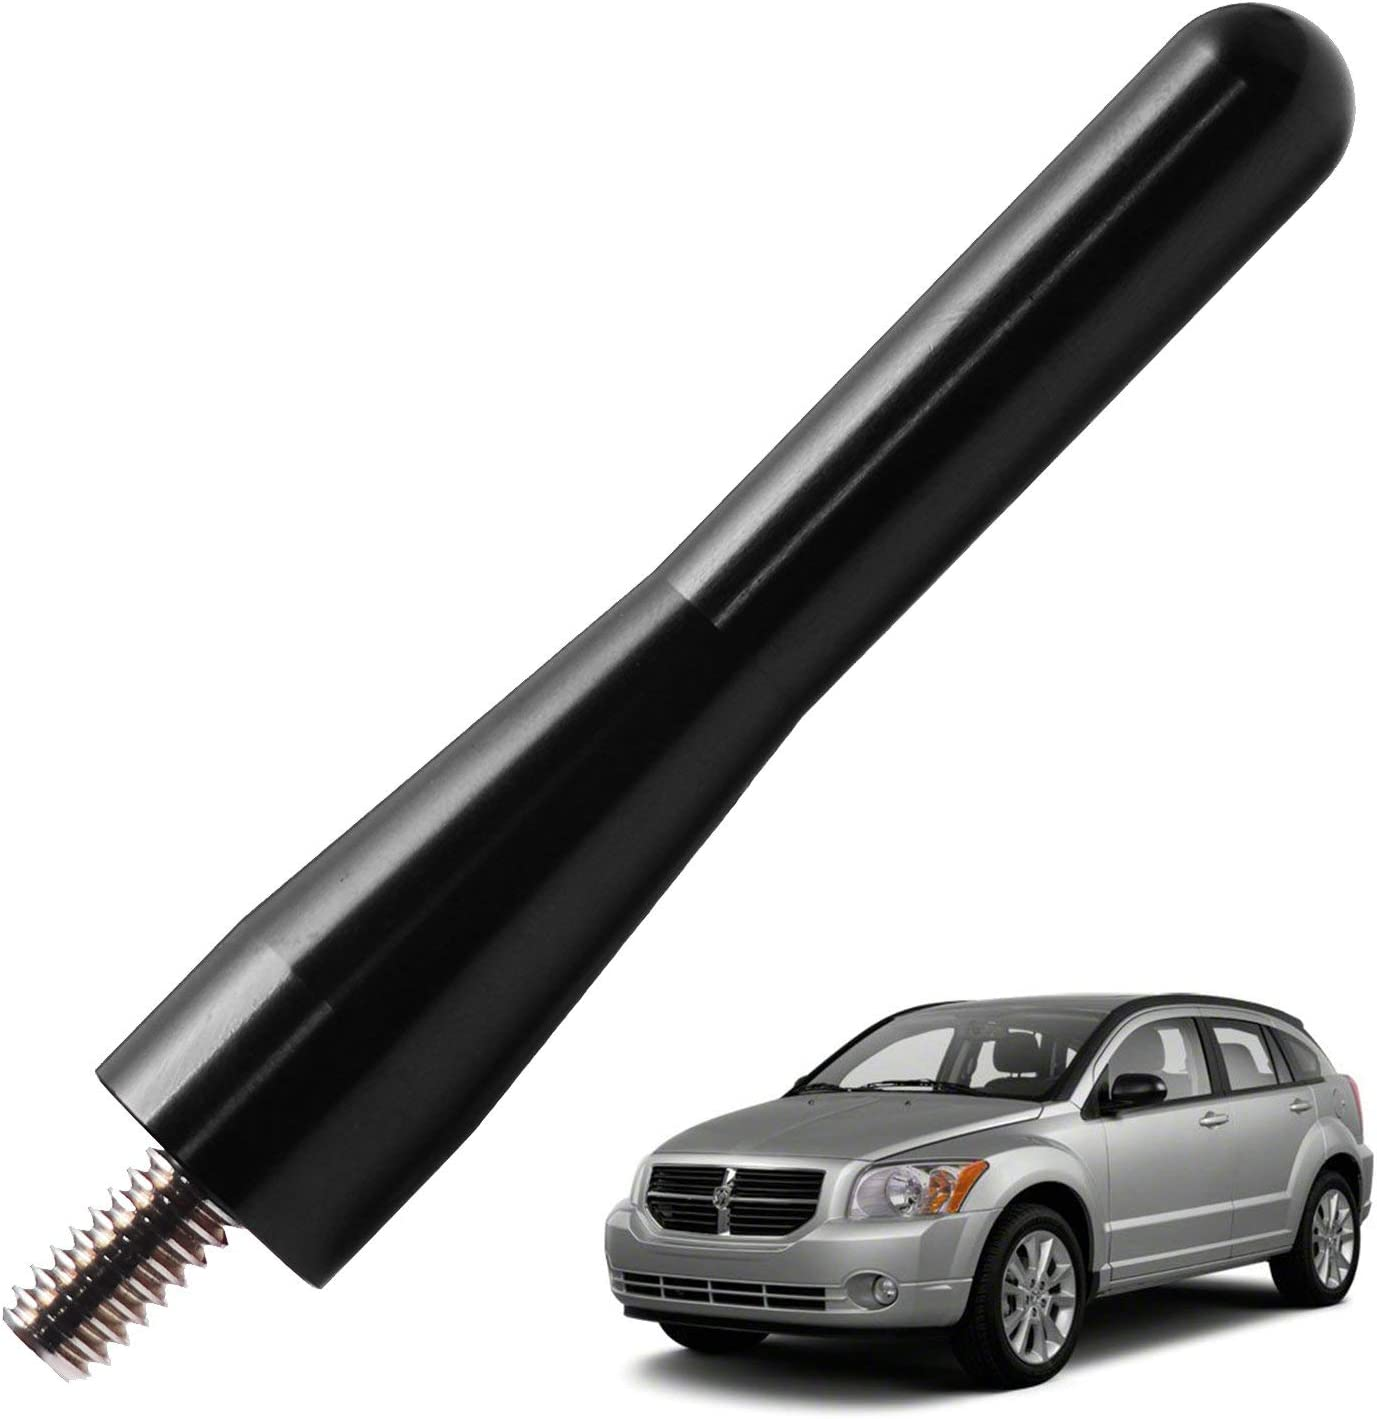 3 inches-Black JAPower Replacement Antenna Compatible with Dodge Caliber 2007-2015